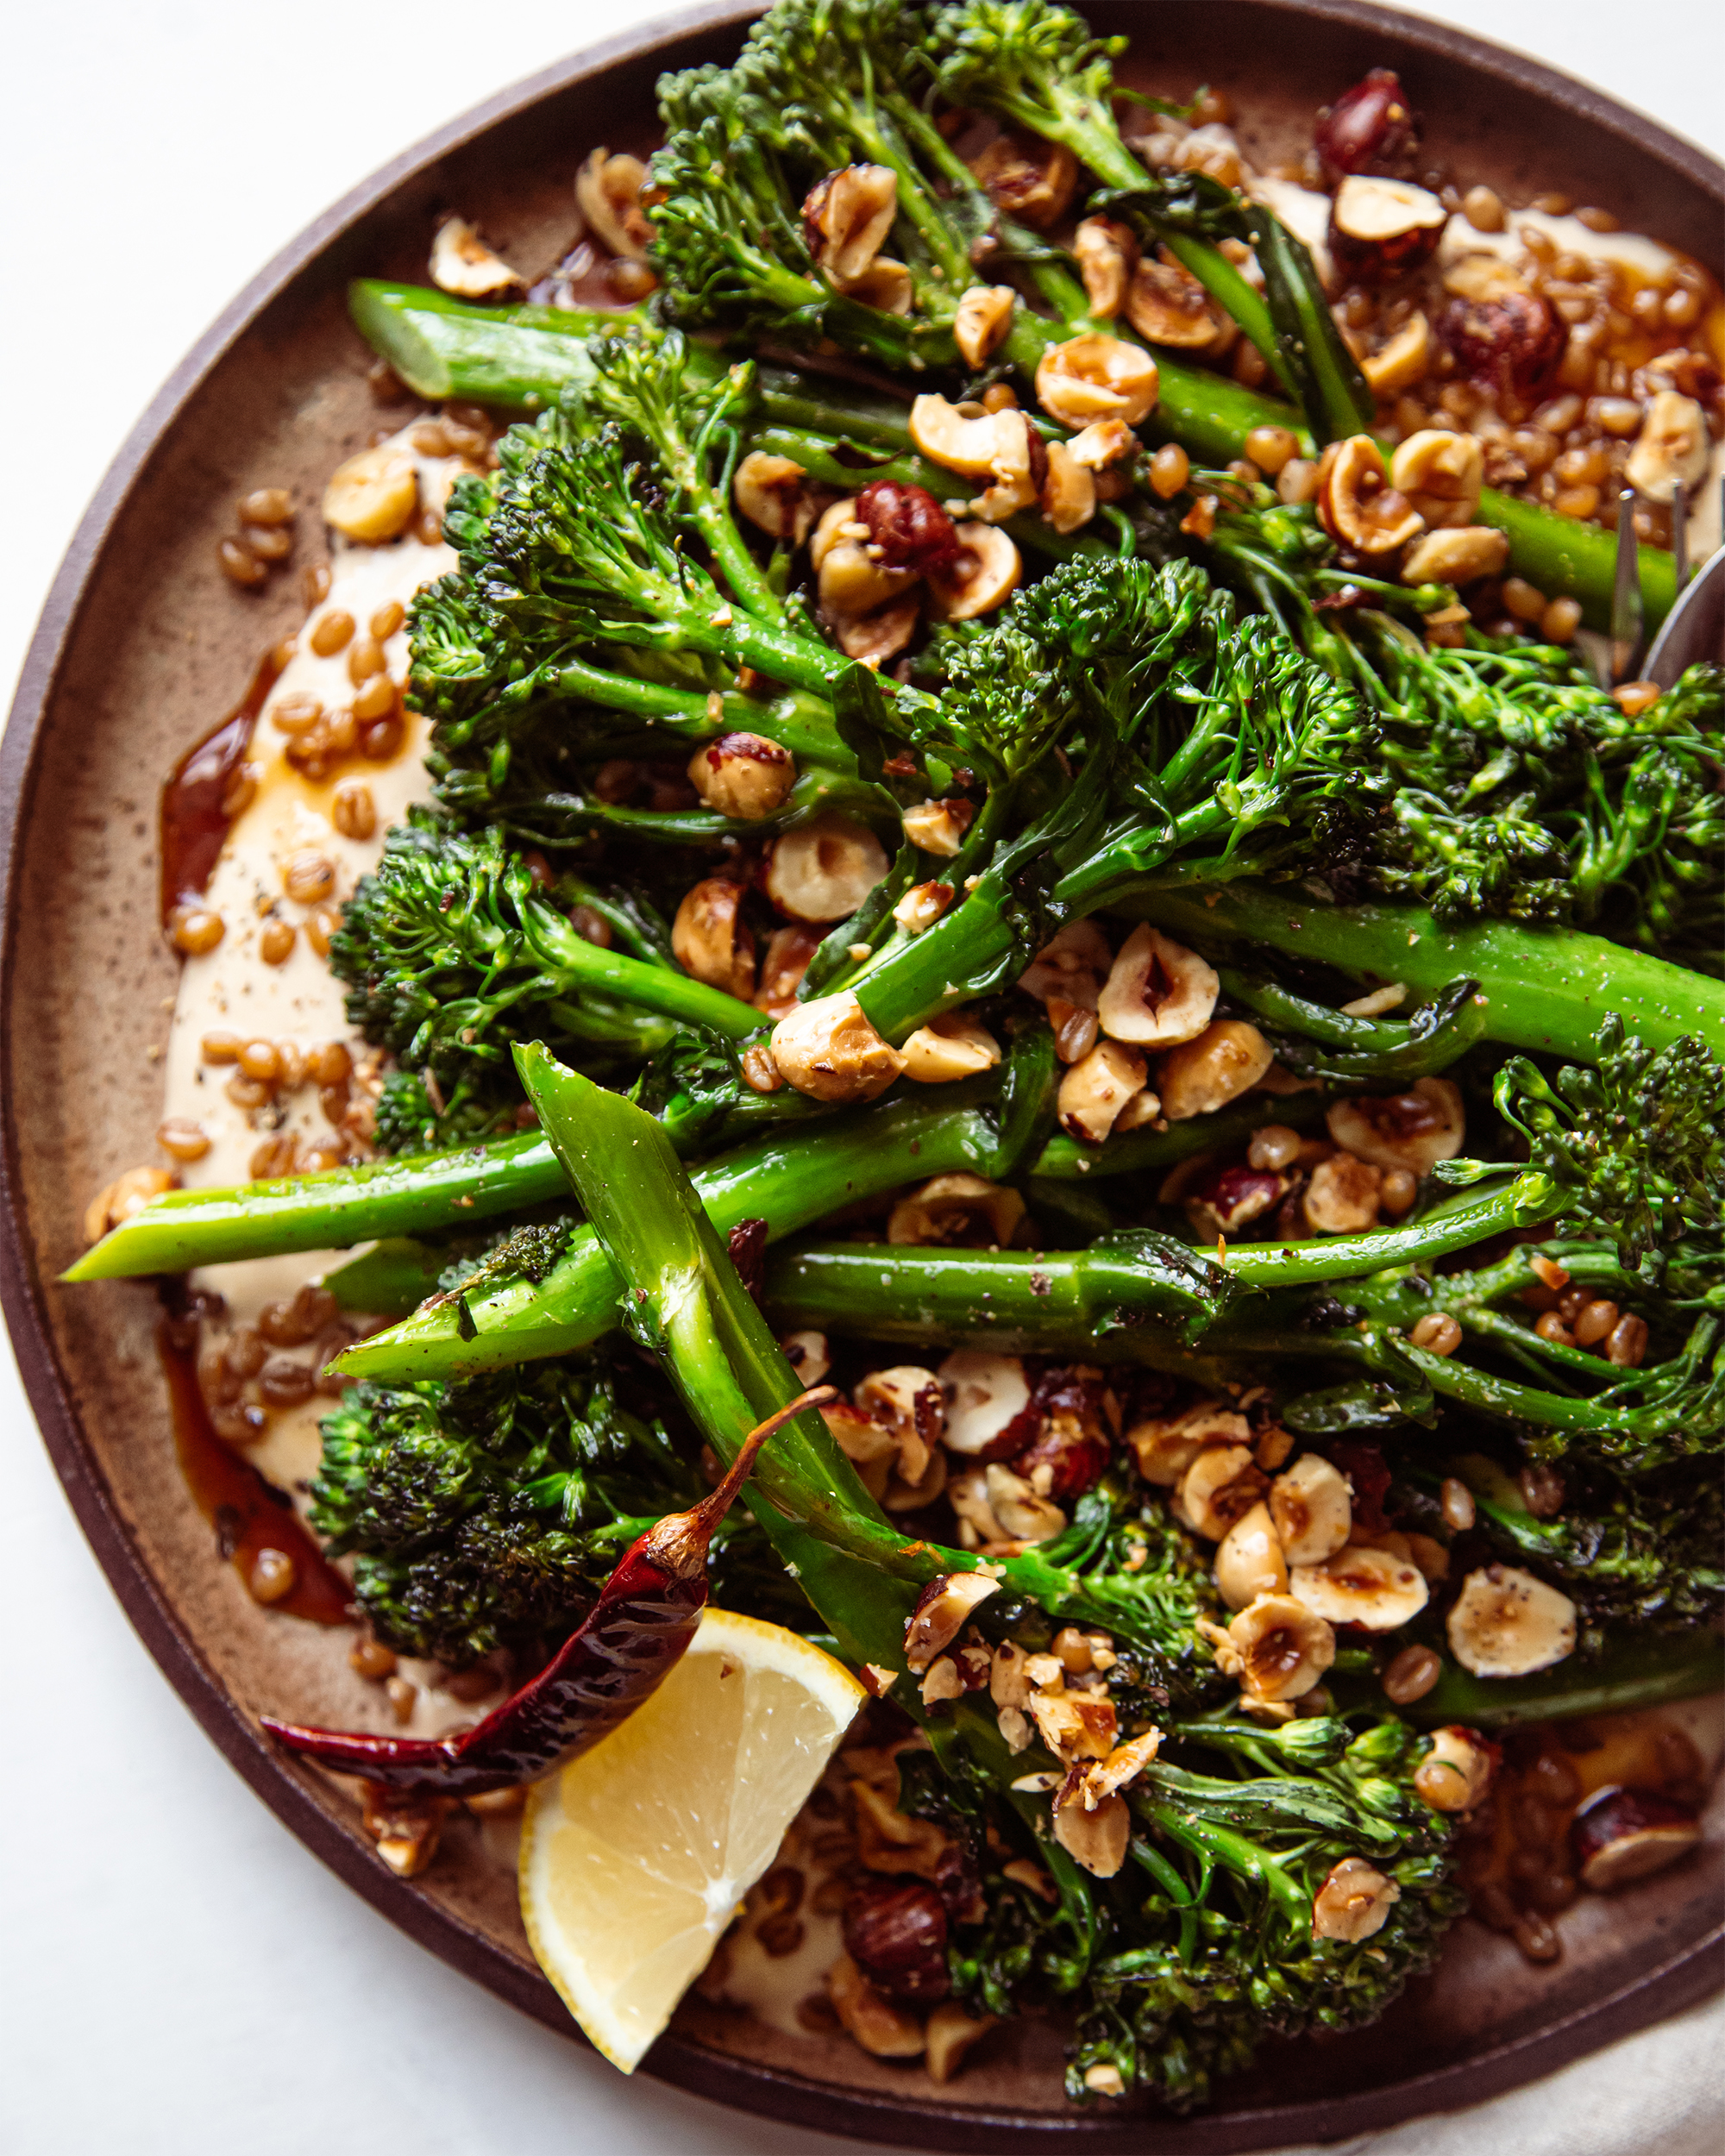 An up close and overhead shot of a broccolini dish on a brown plate.